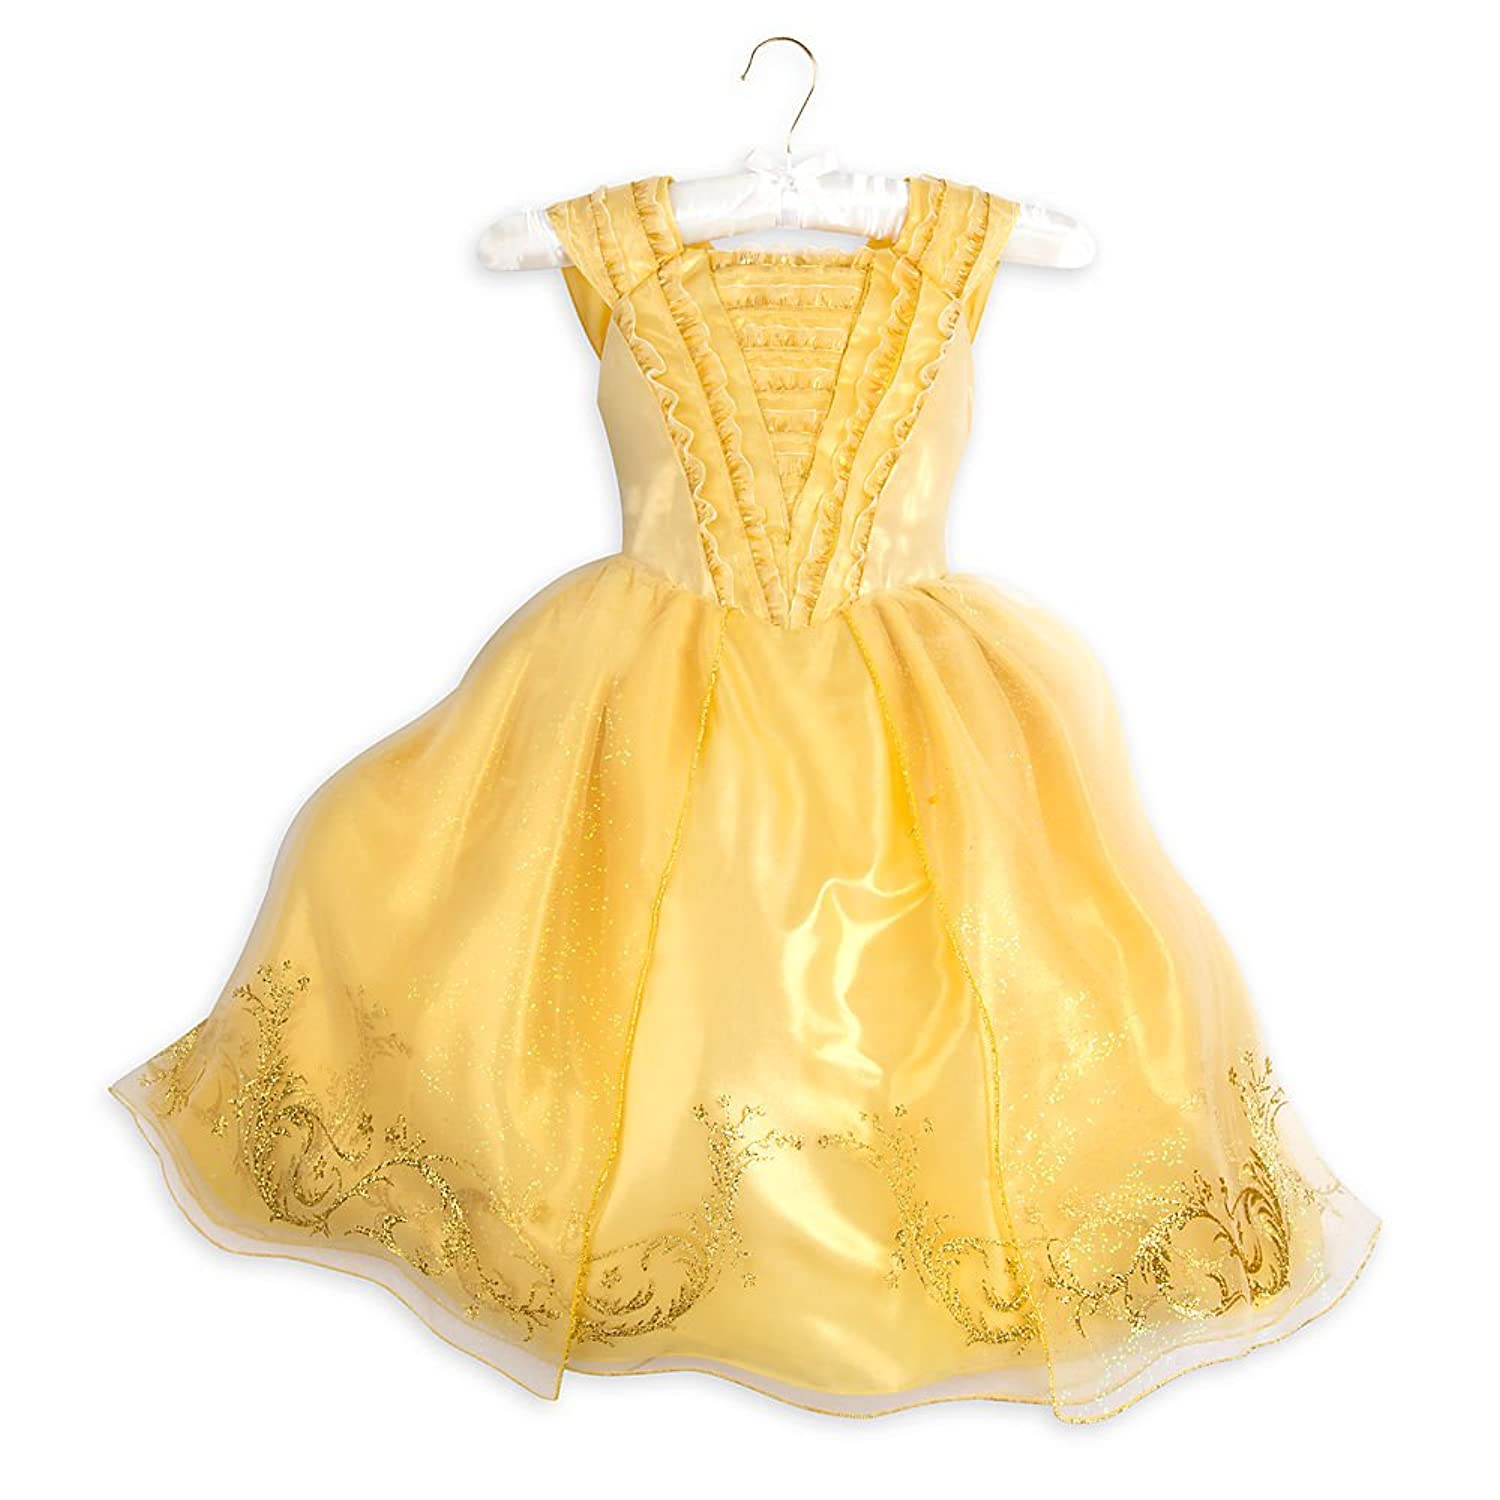 Amazon.com: Disney Belle Costume for Kids - Beauty and the Beast ...